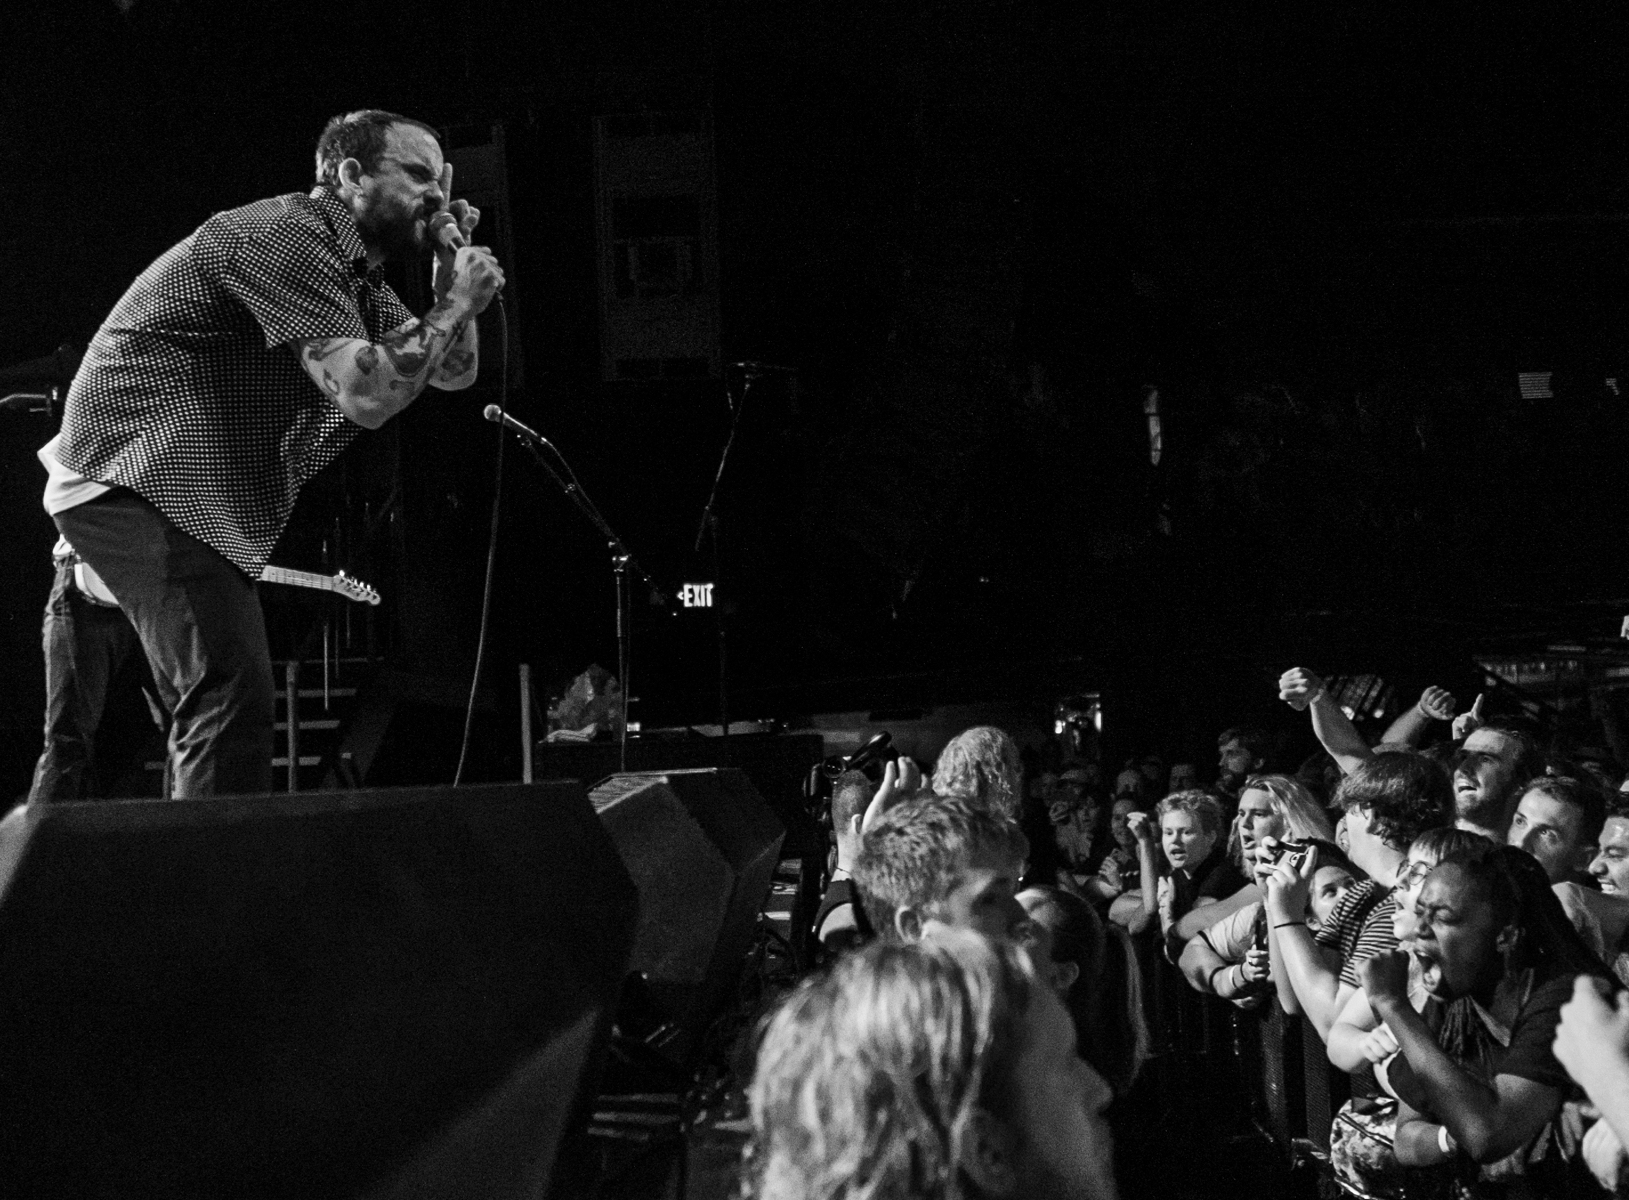 Idles_FirstAvenue_080319_Chris_Goyette_37